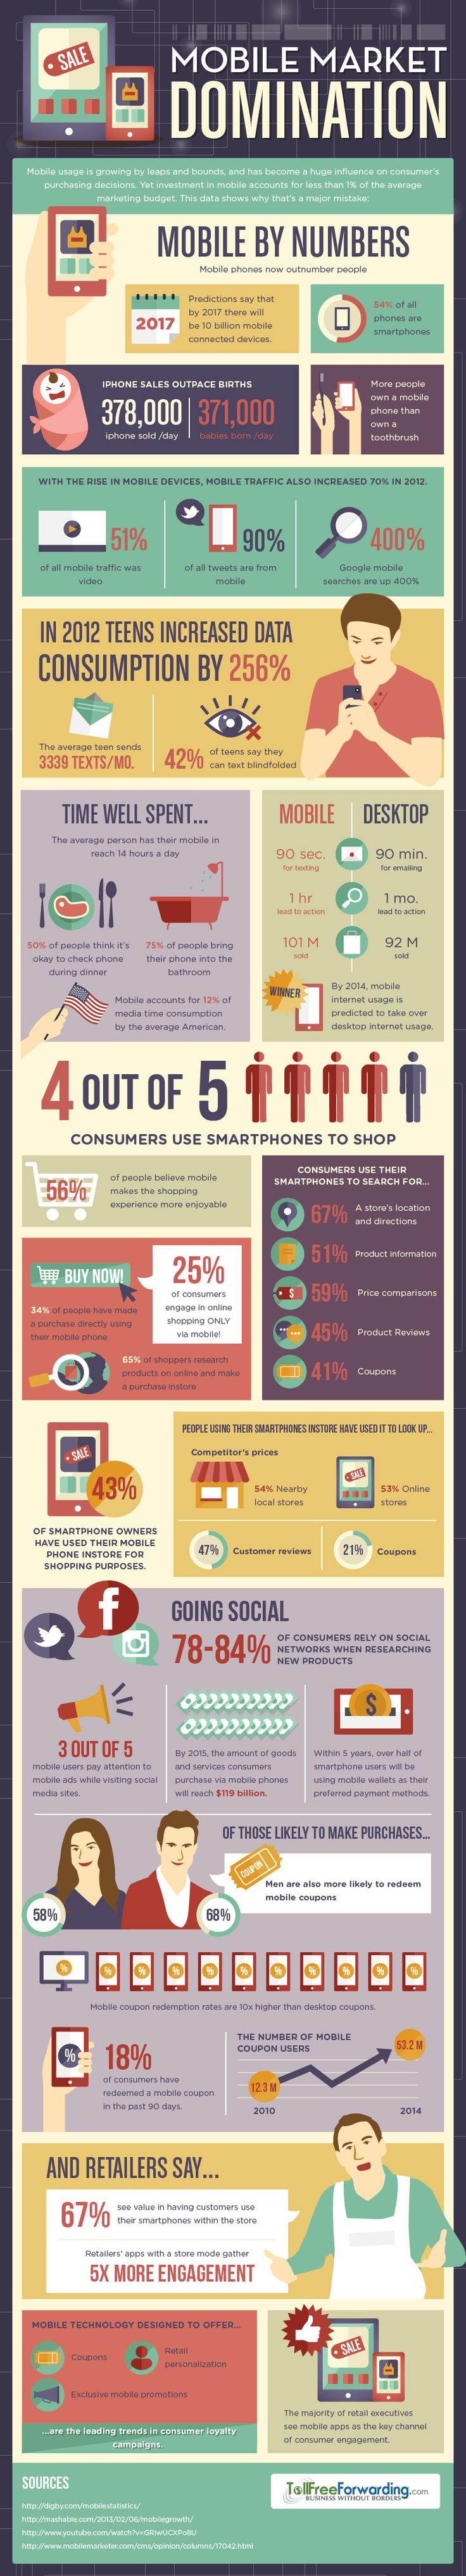 Infographic: Mobile Market Domination #infographic For more similar posts, visit: www.facebook.com/nfaktor